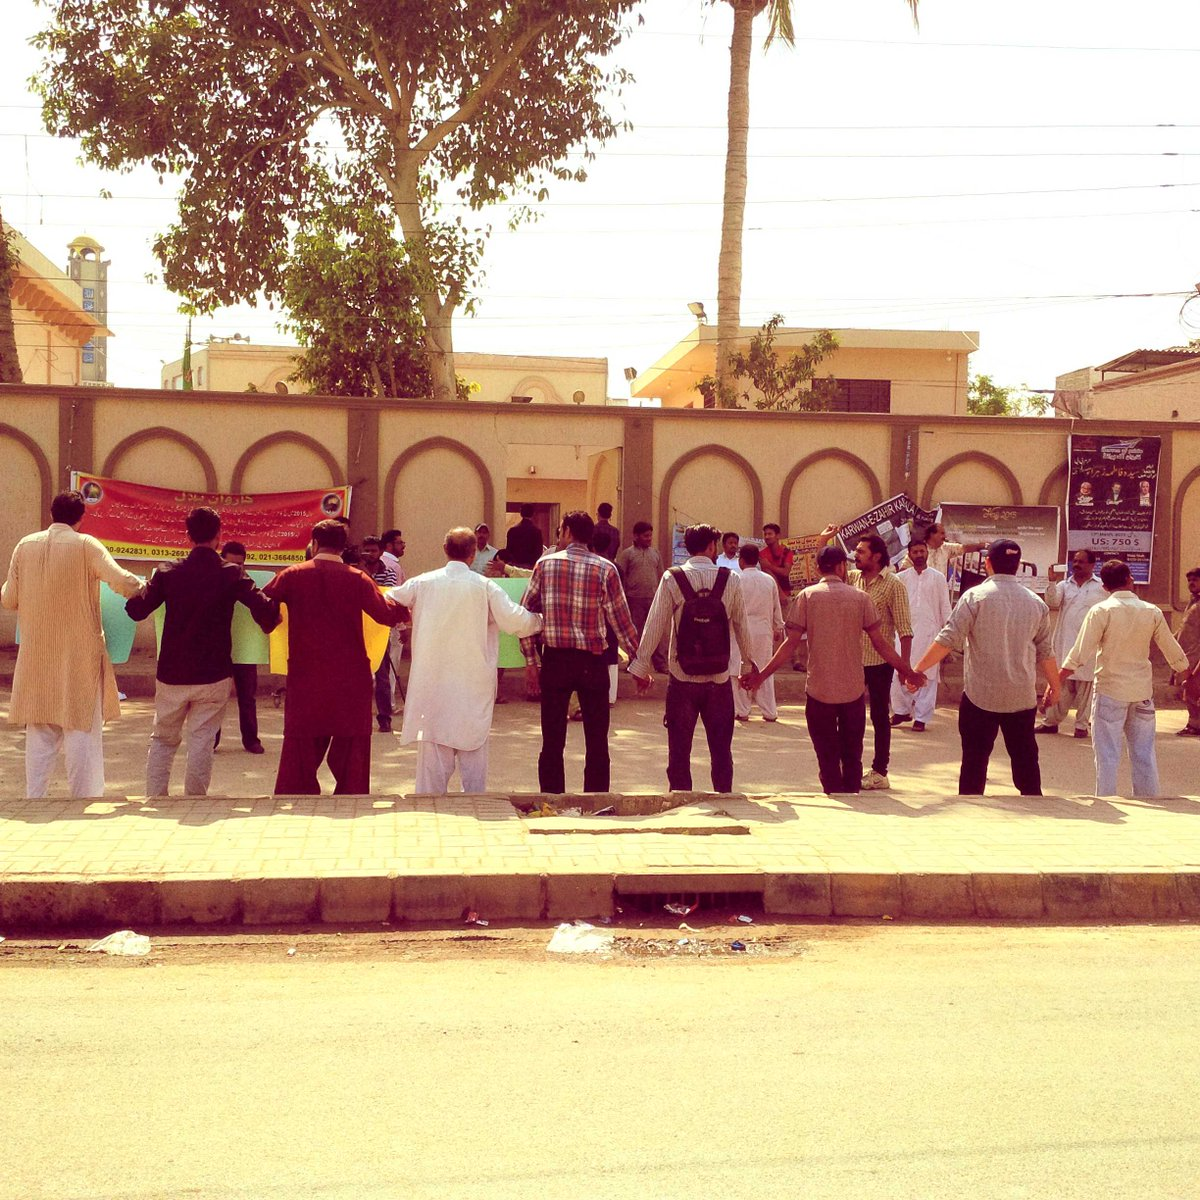 Shias, Sunnis, Hindus and Christians forming human chain infront of Imam Bargah right now #ShiaGenocide http://t.co/u2S6Bd9cQ3